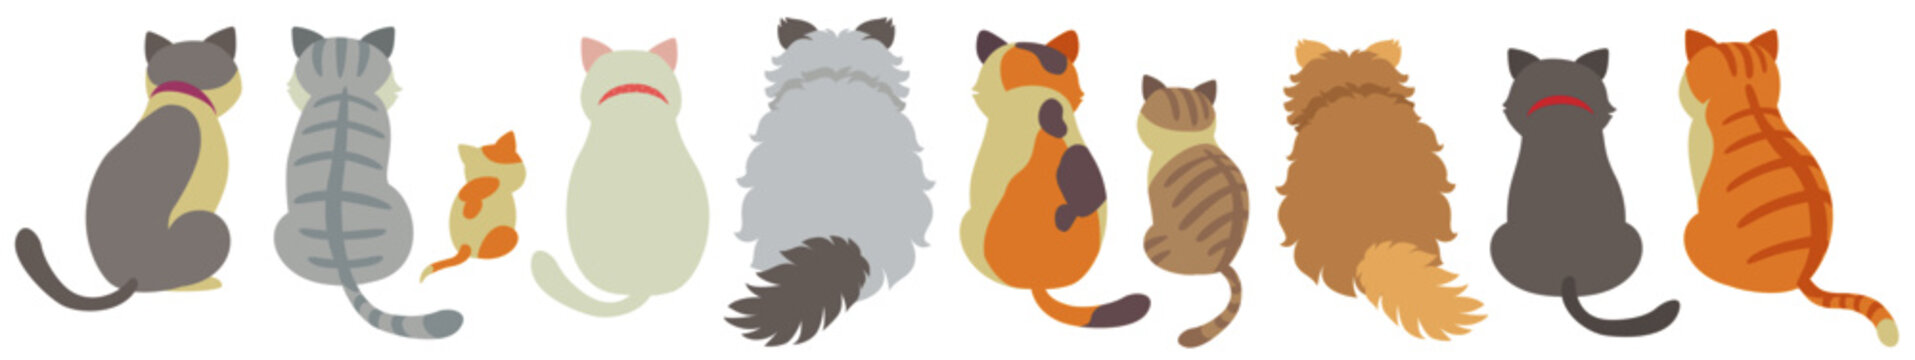 Back view of cute cats on white background. Vector illustration in flat cartoon style.